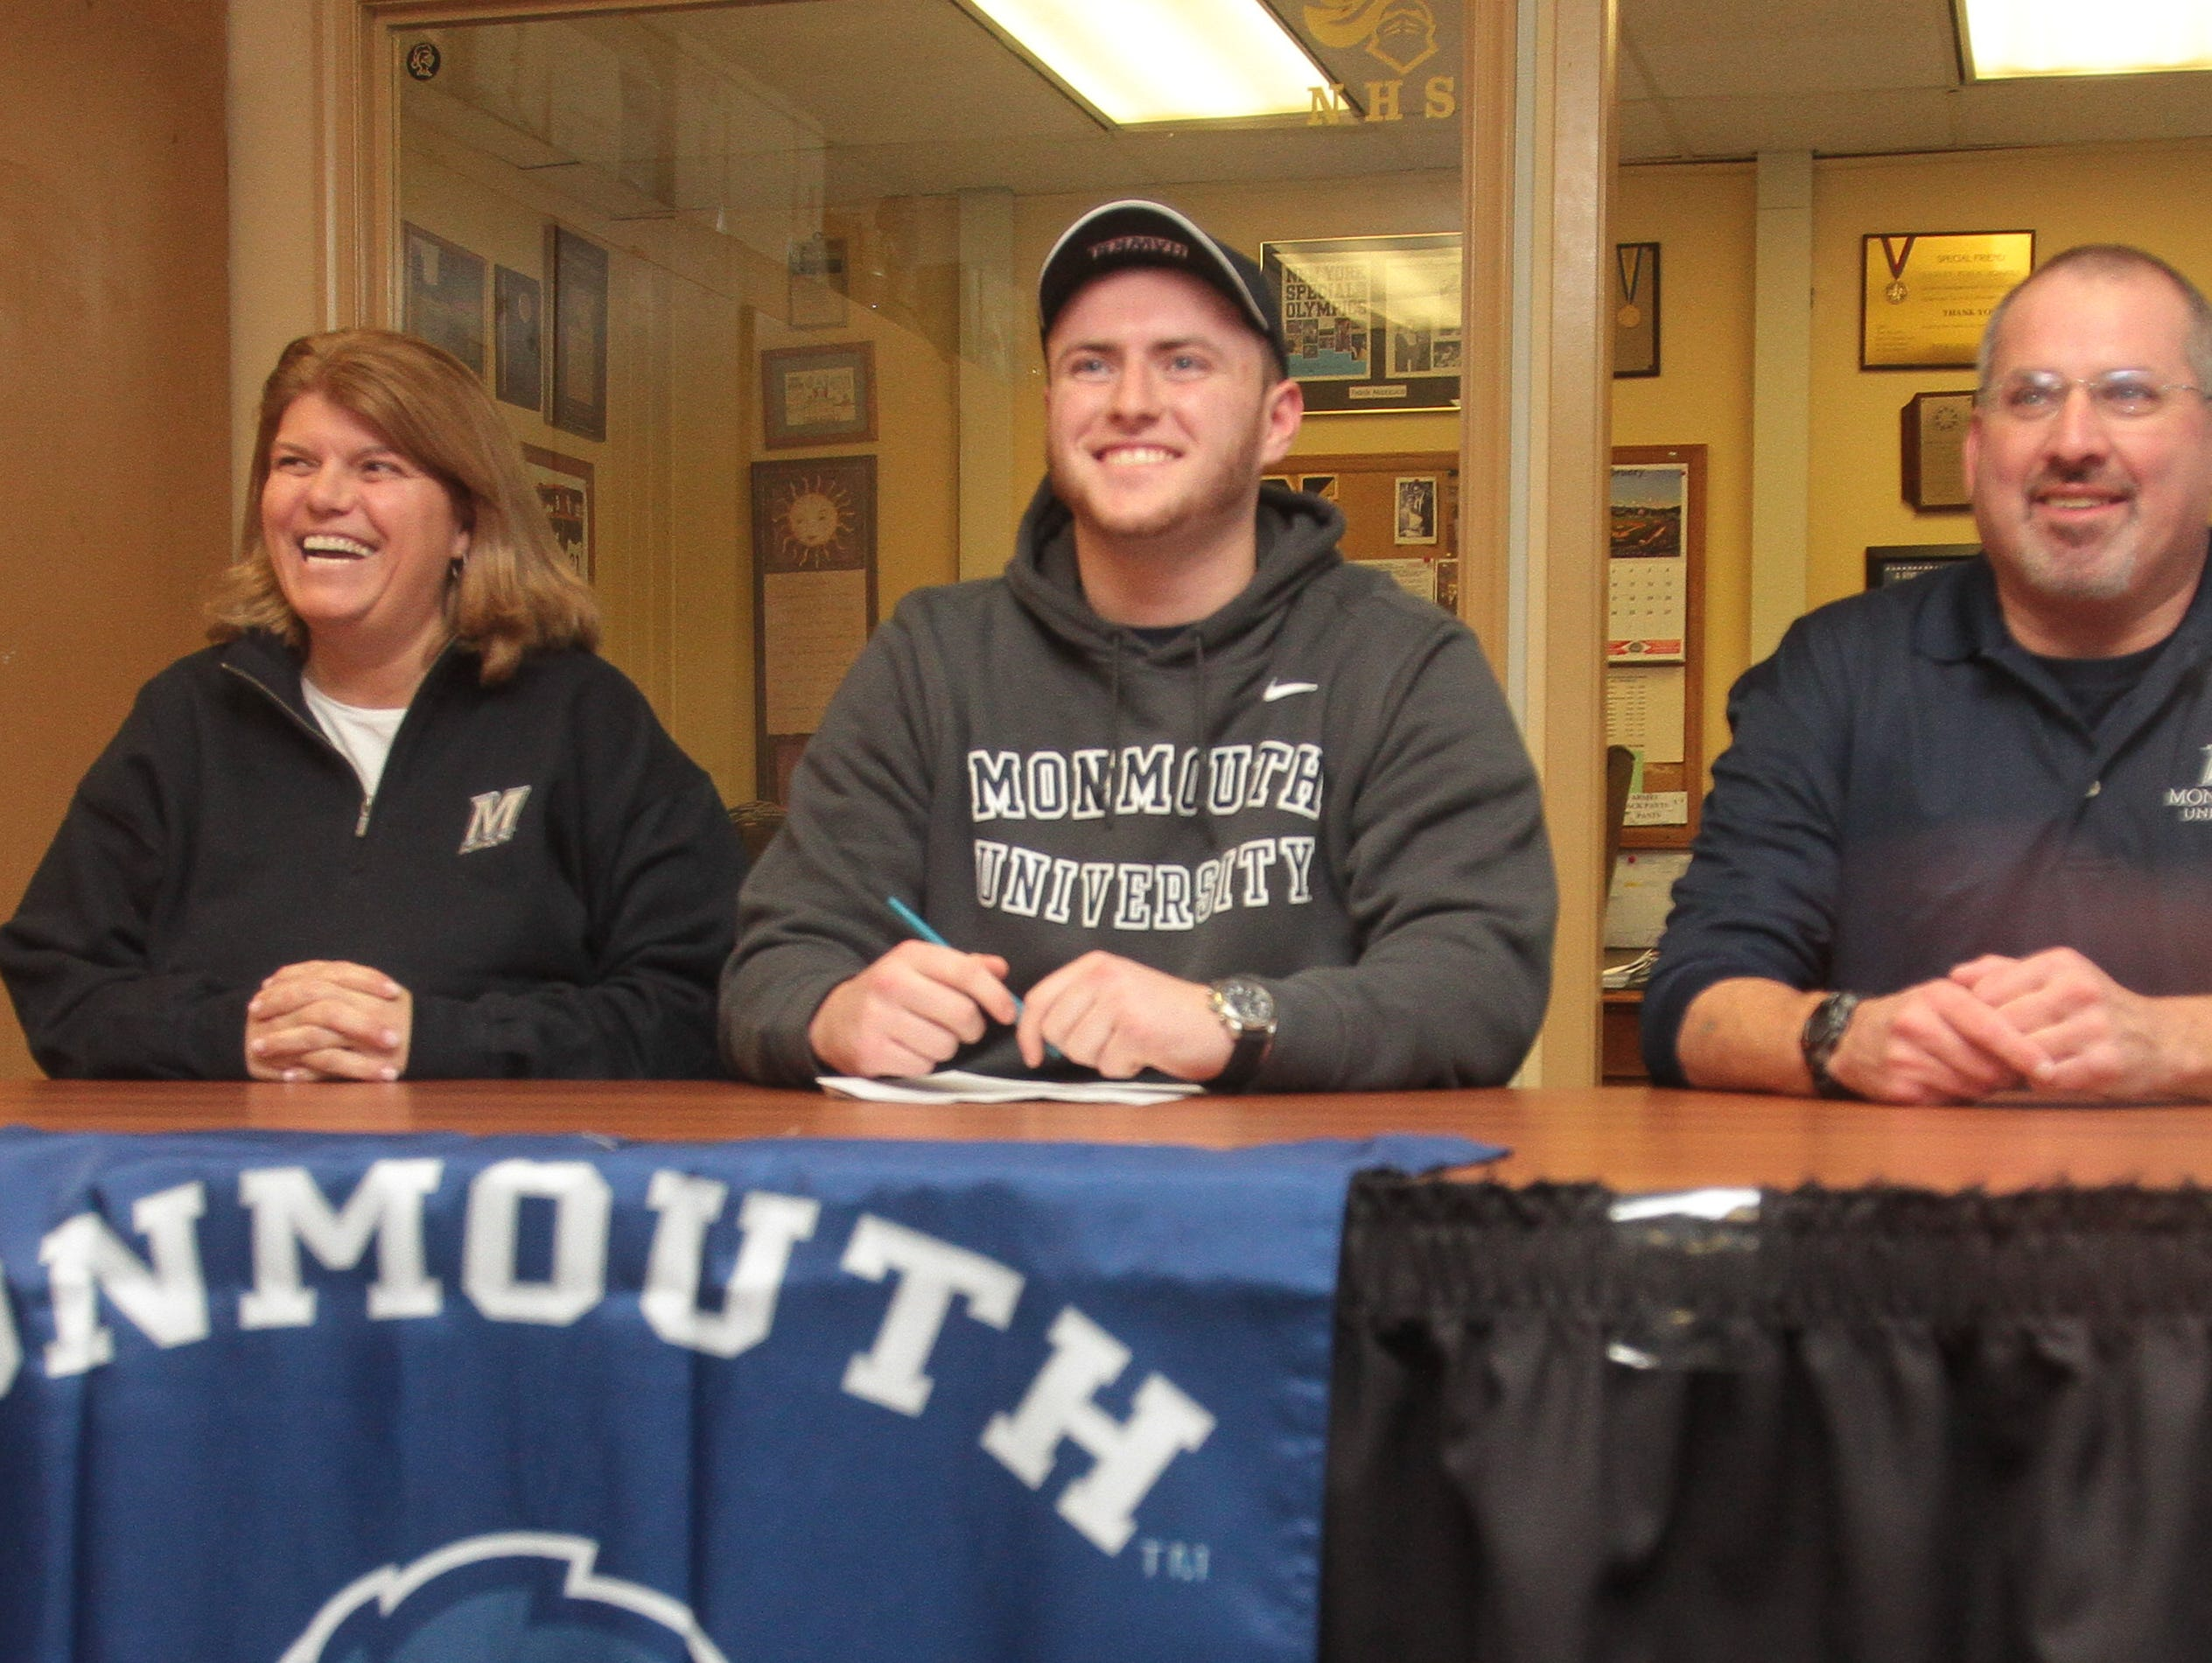 Brian Syracuse (center) with his parents Gloria (left) and Bob (right) on National Signing Day Feb. 3, 2016 at Nanuet Senior High School